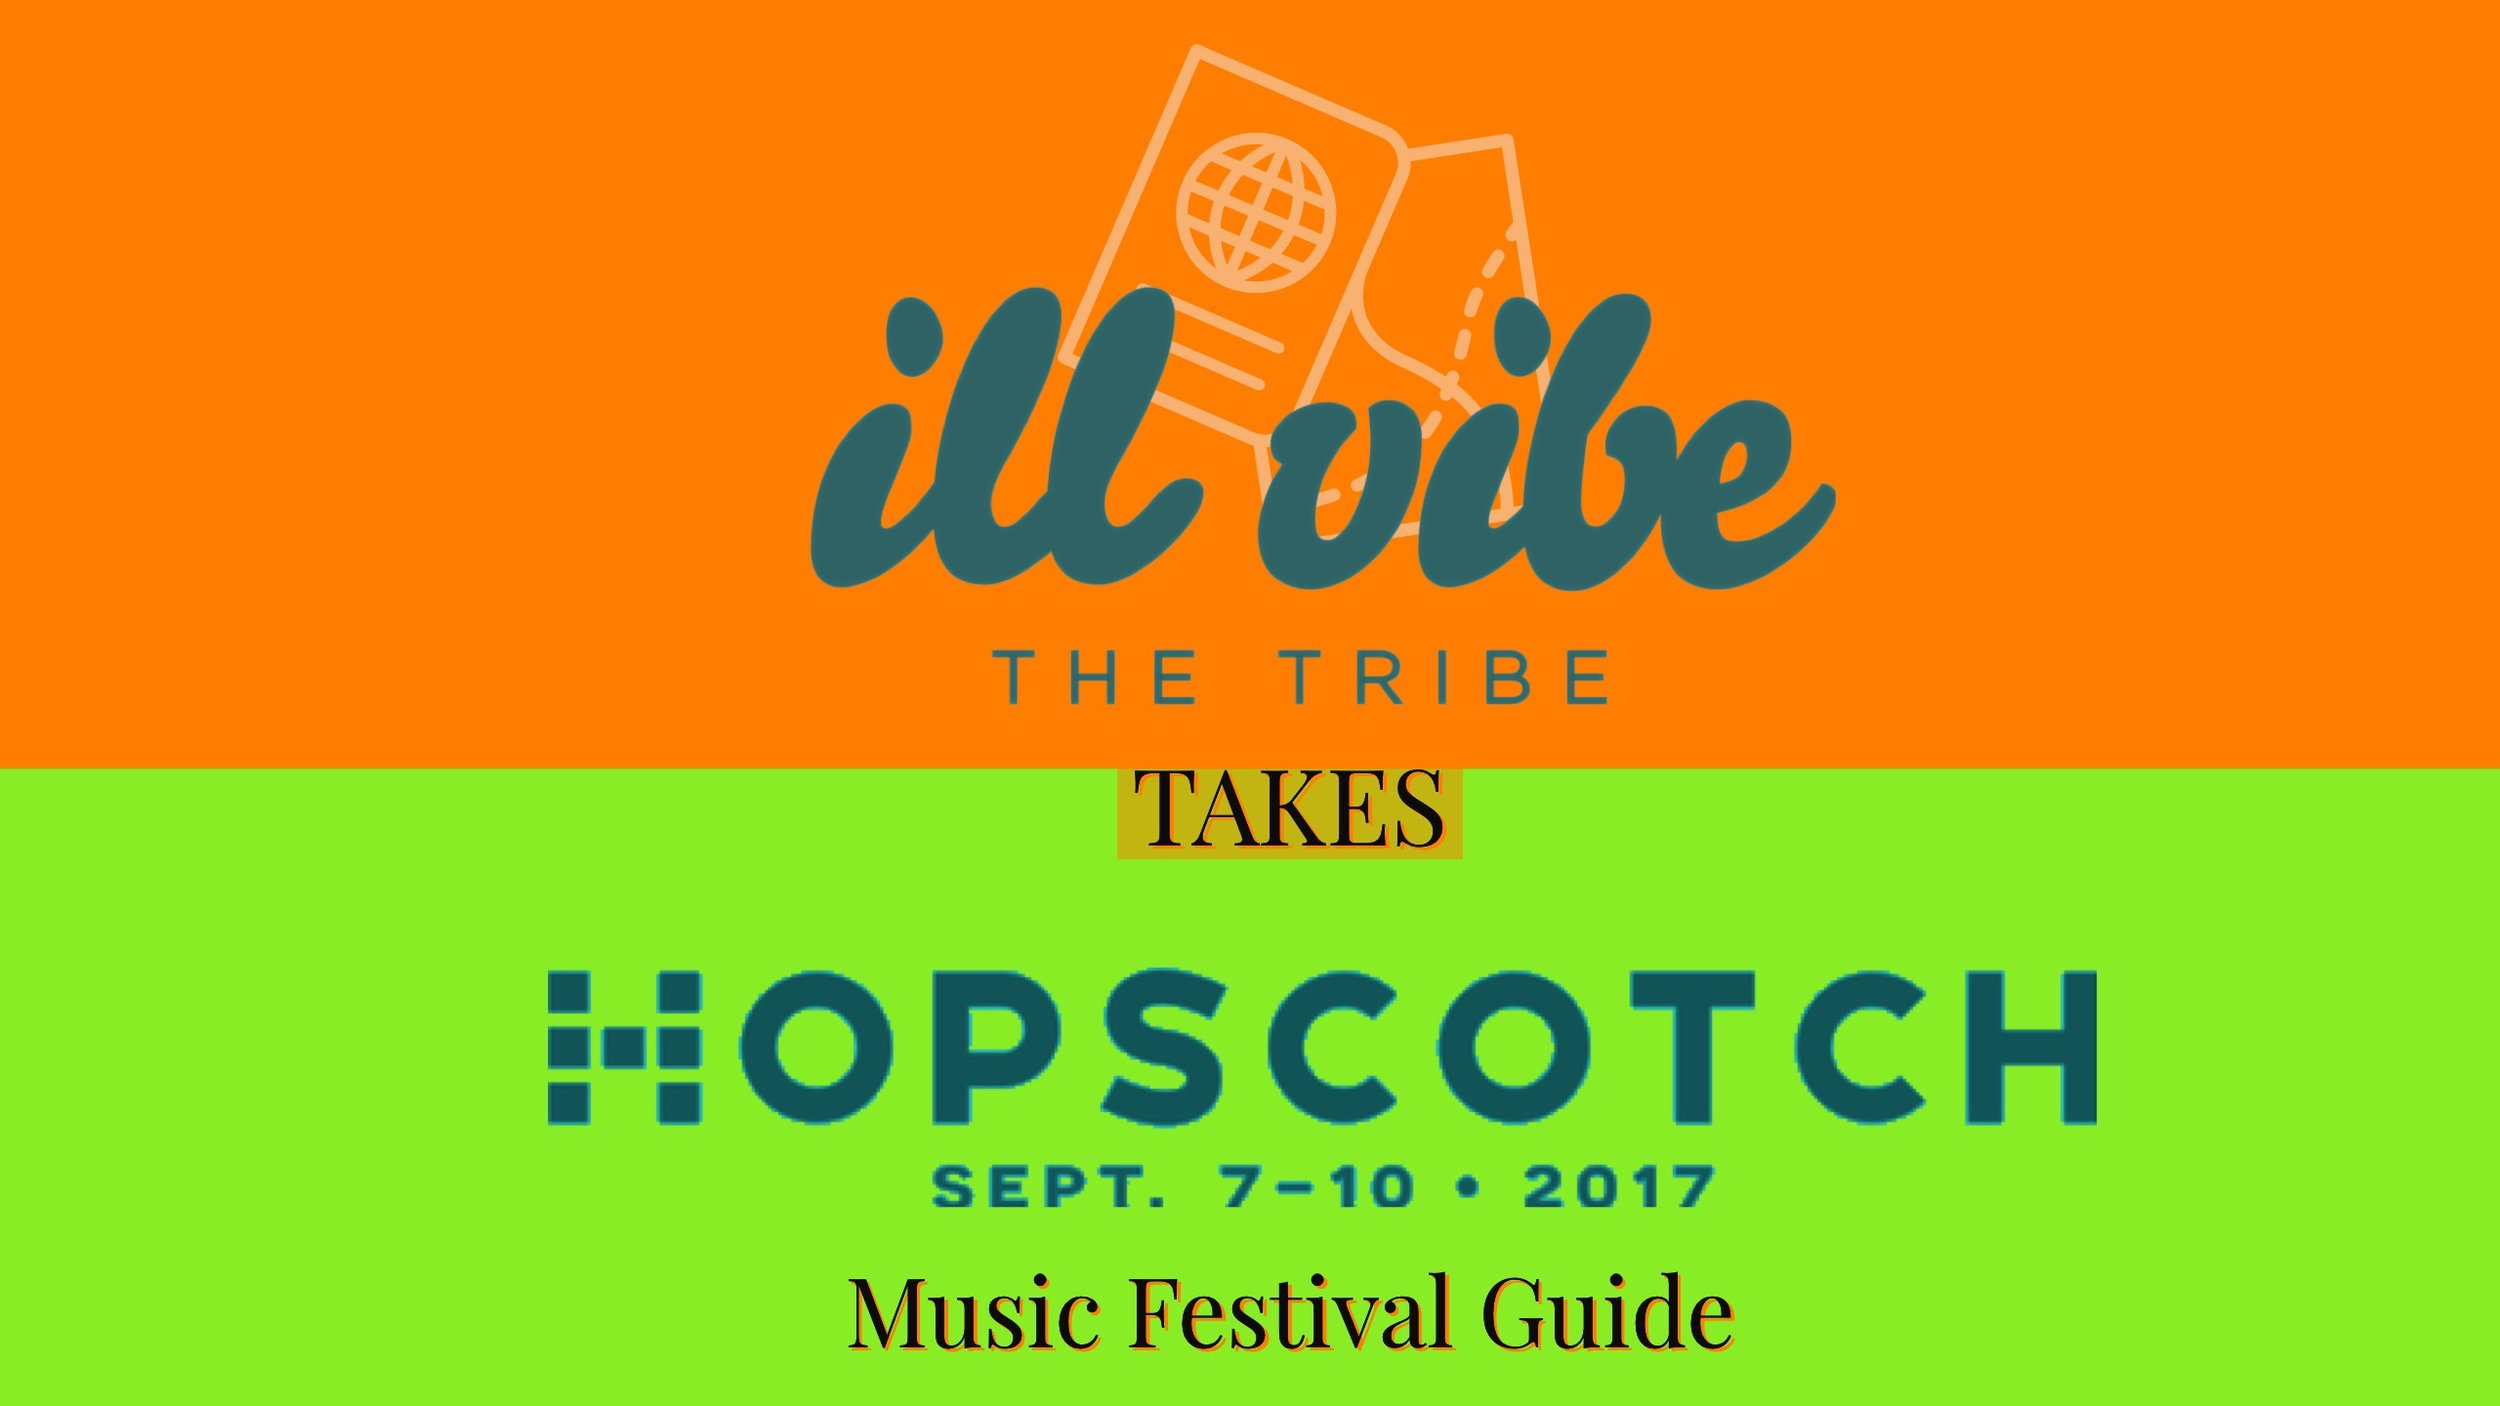 Hopscotch Music Festival Guide 2k18